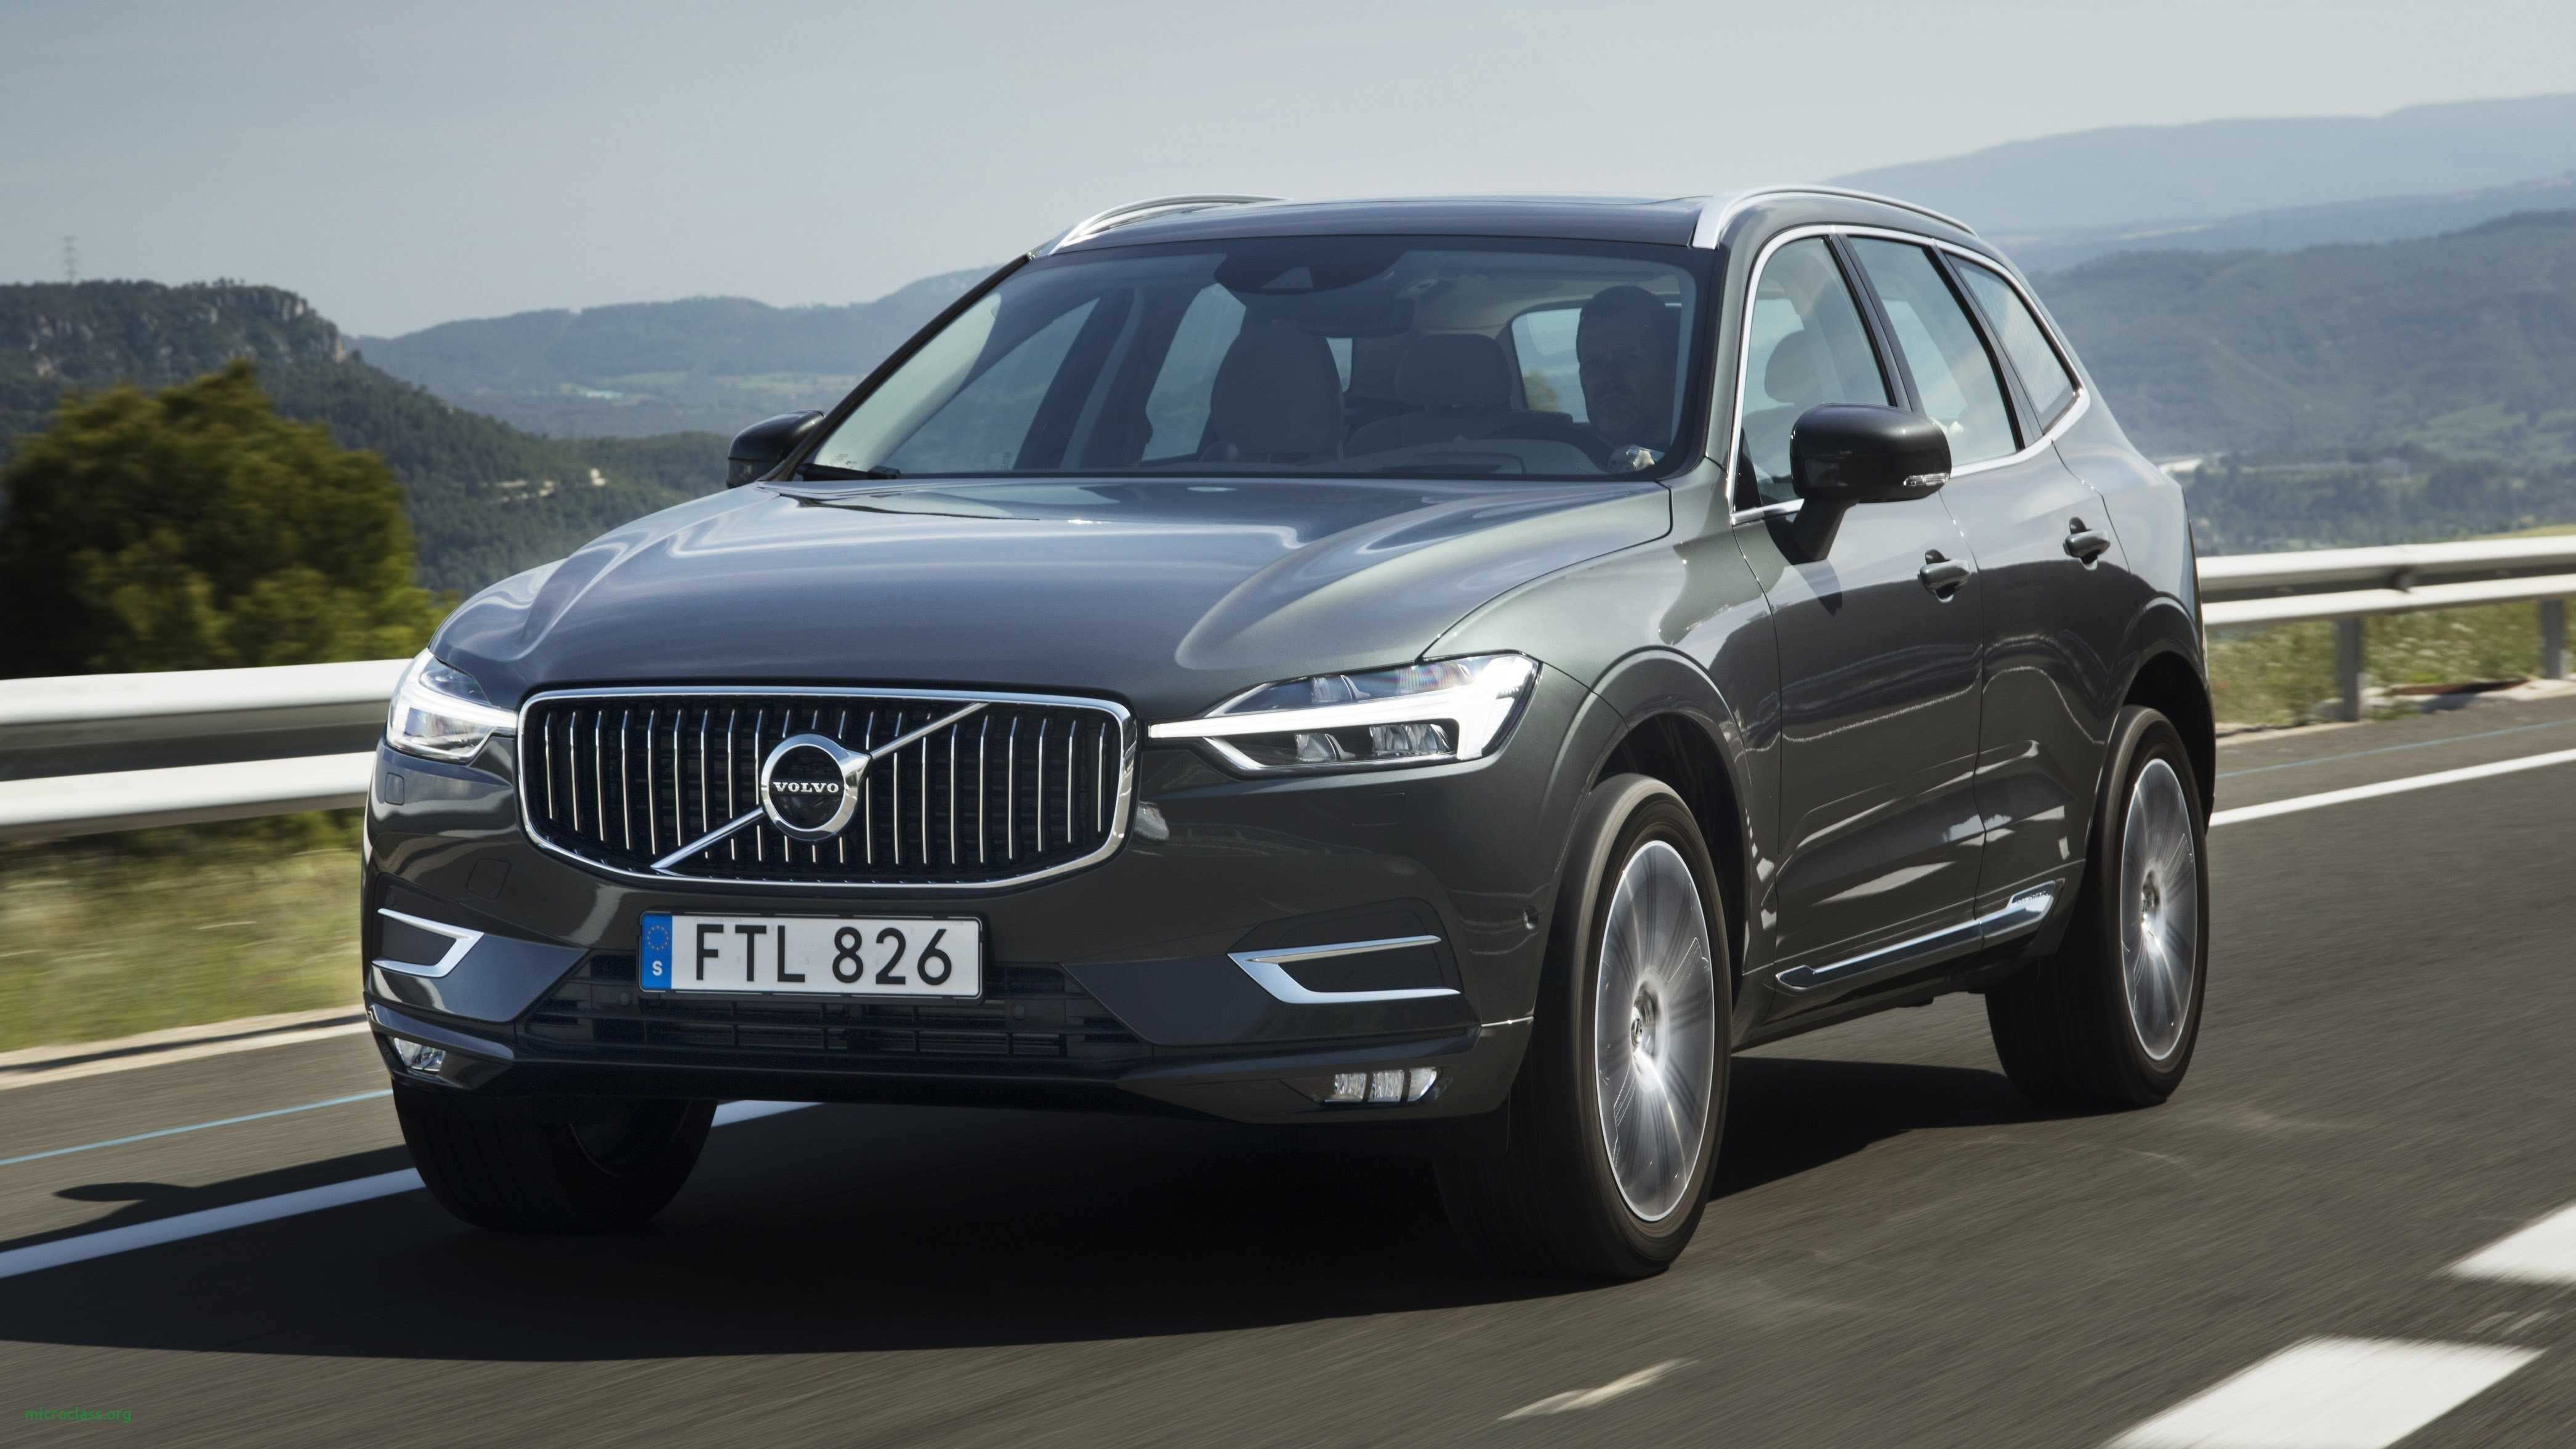 91 Concept of Volvo 2019 Station Wagon Release Date Spesification with Volvo 2019 Station Wagon Release Date